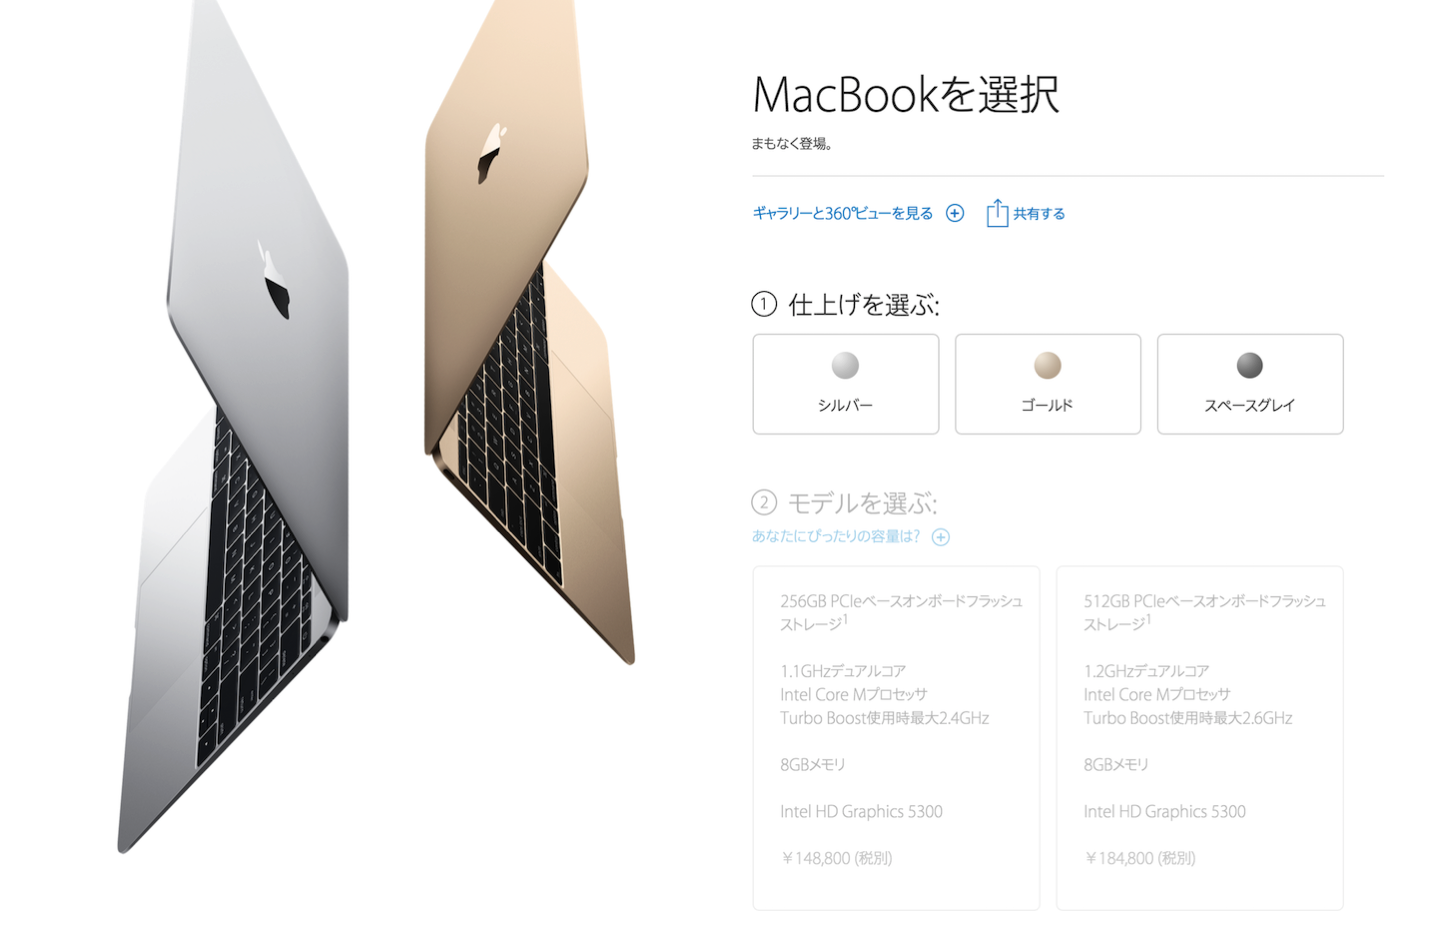 Buying the new macbook